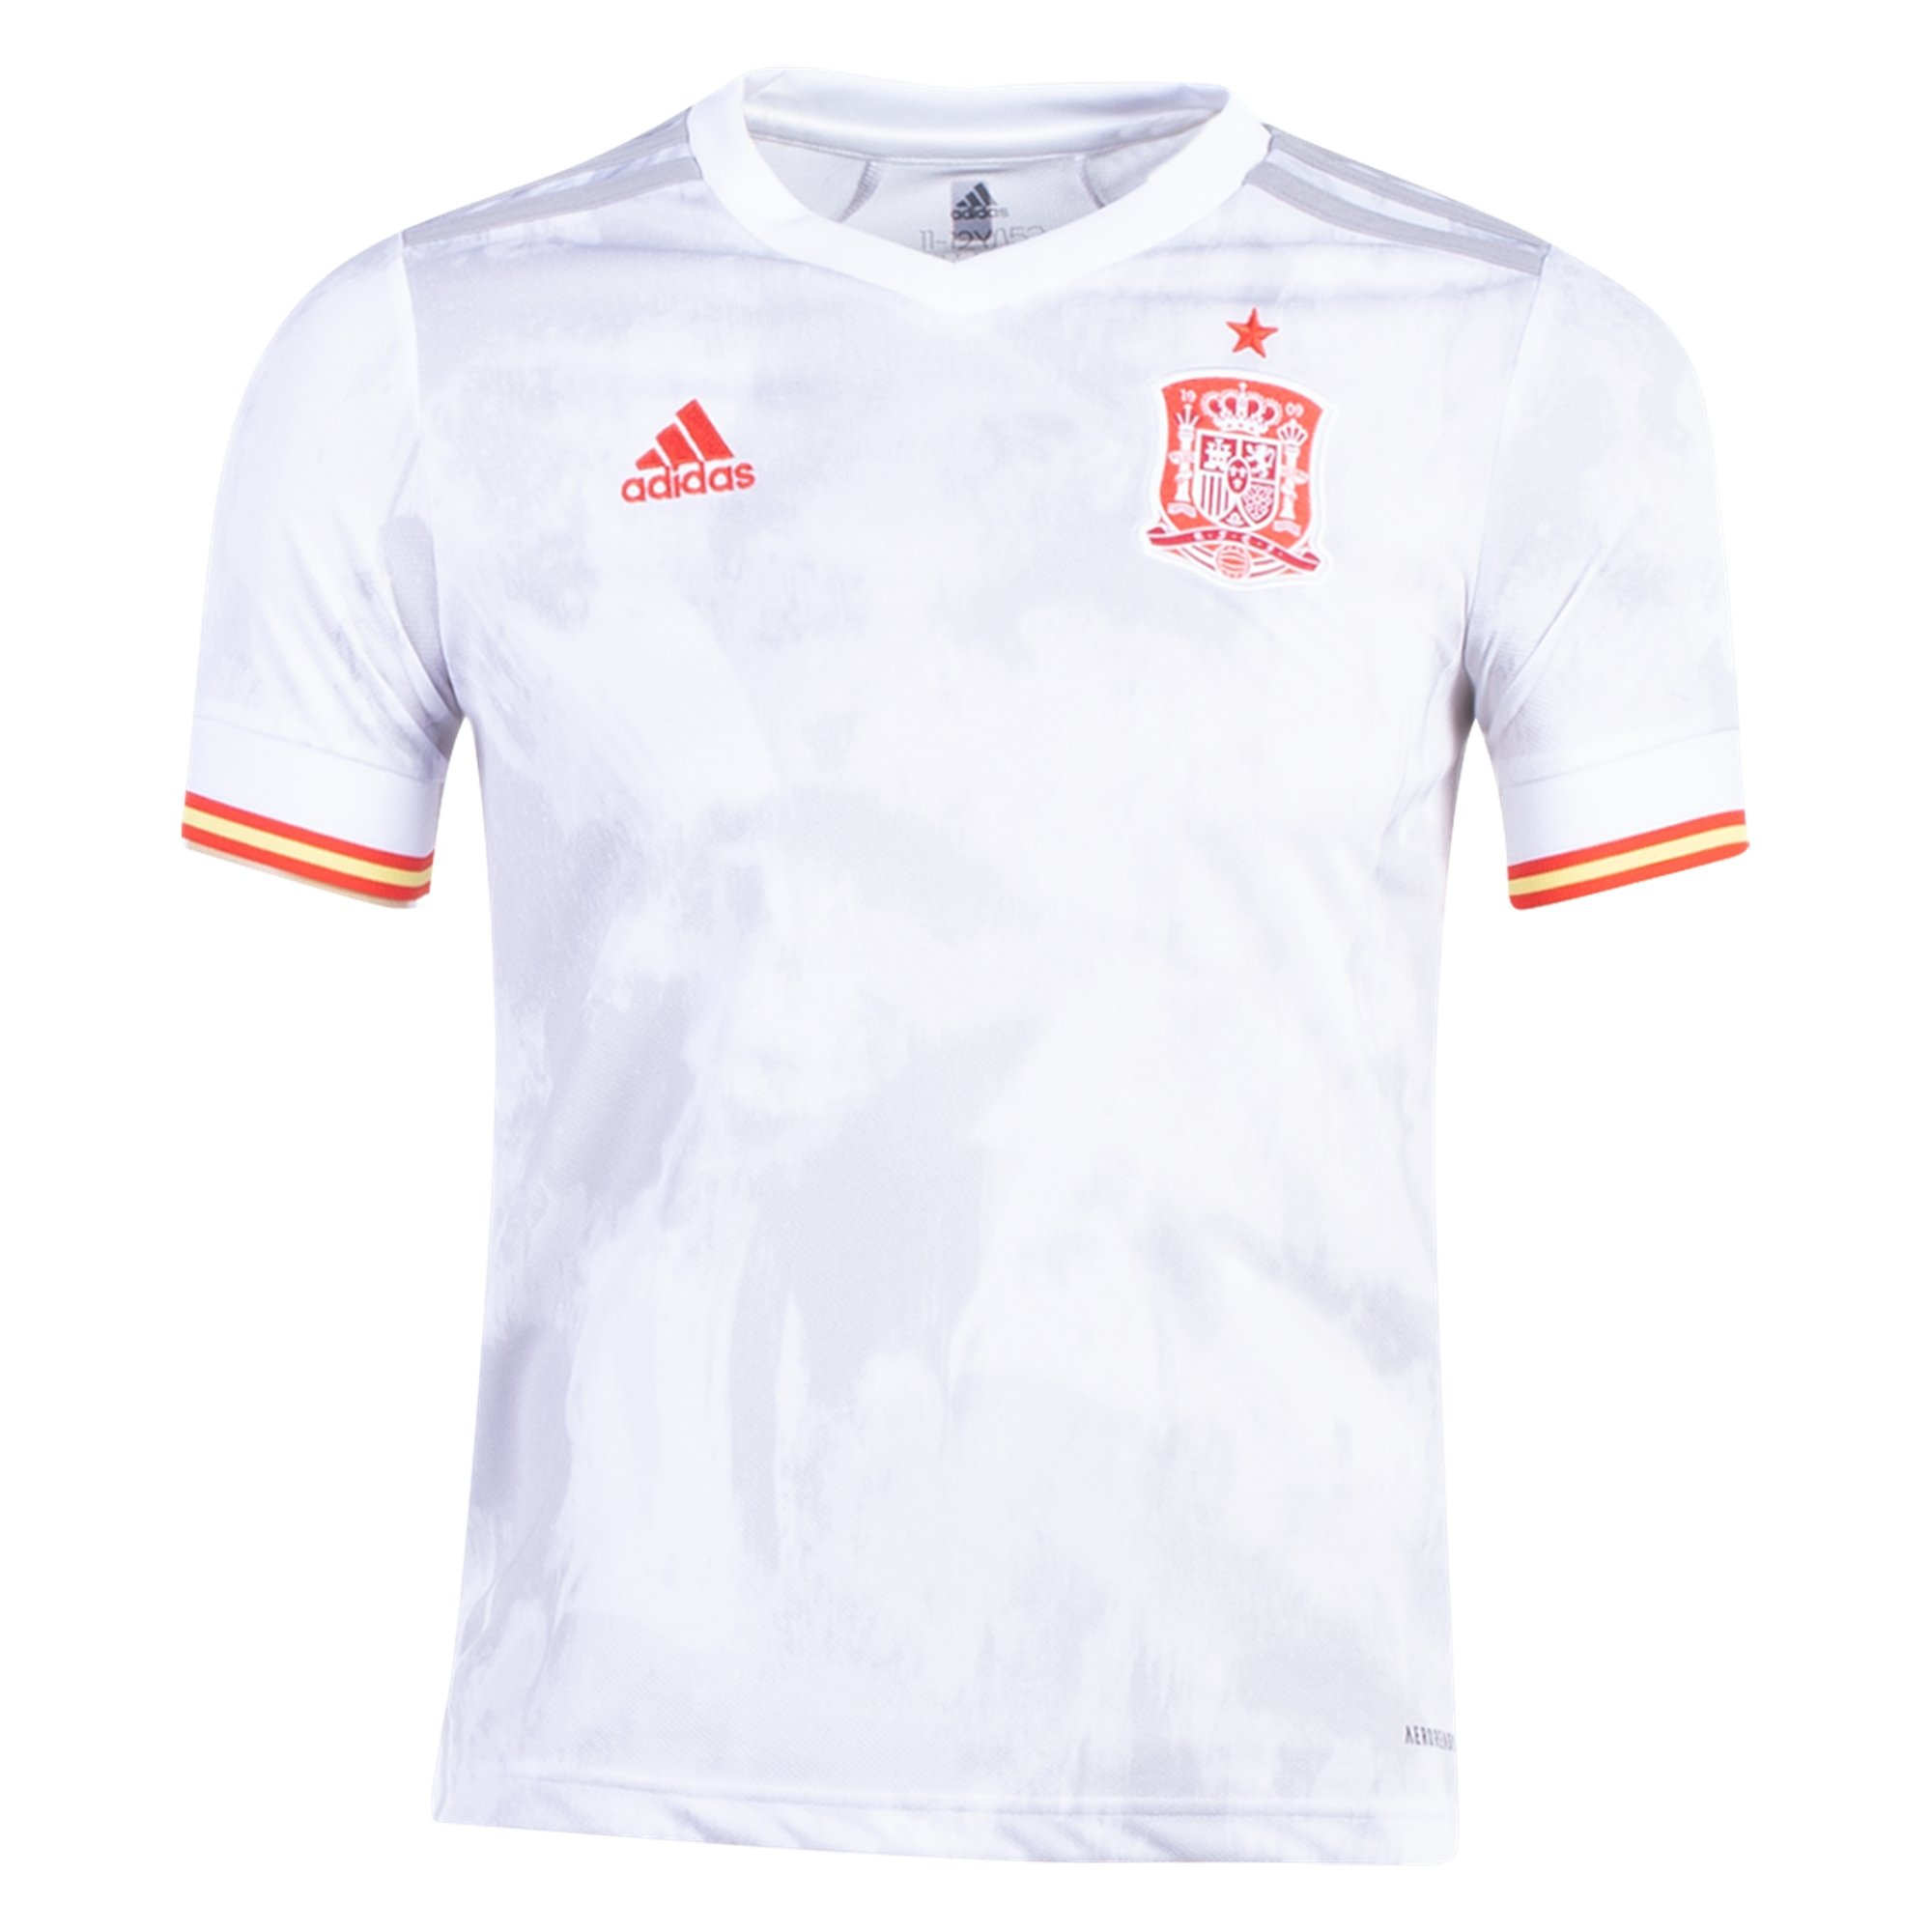 adidas Spain Youth Away Jersey 2021/22